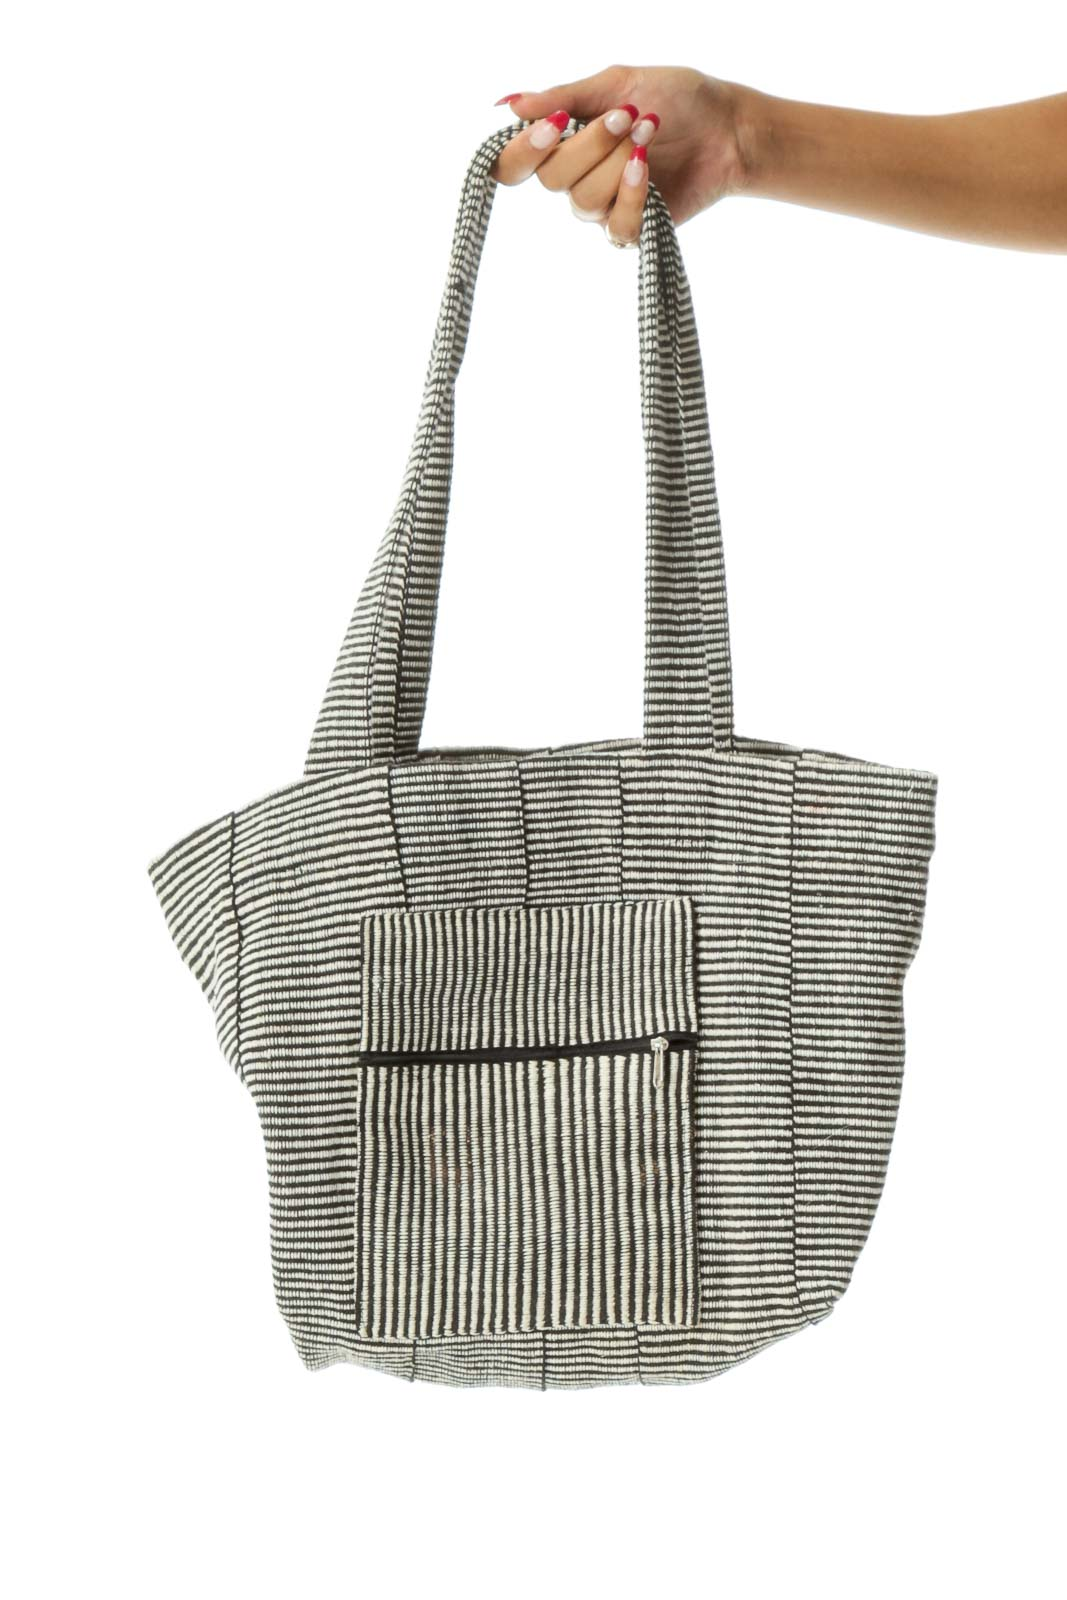 Black Cream Woven Cotton Tote